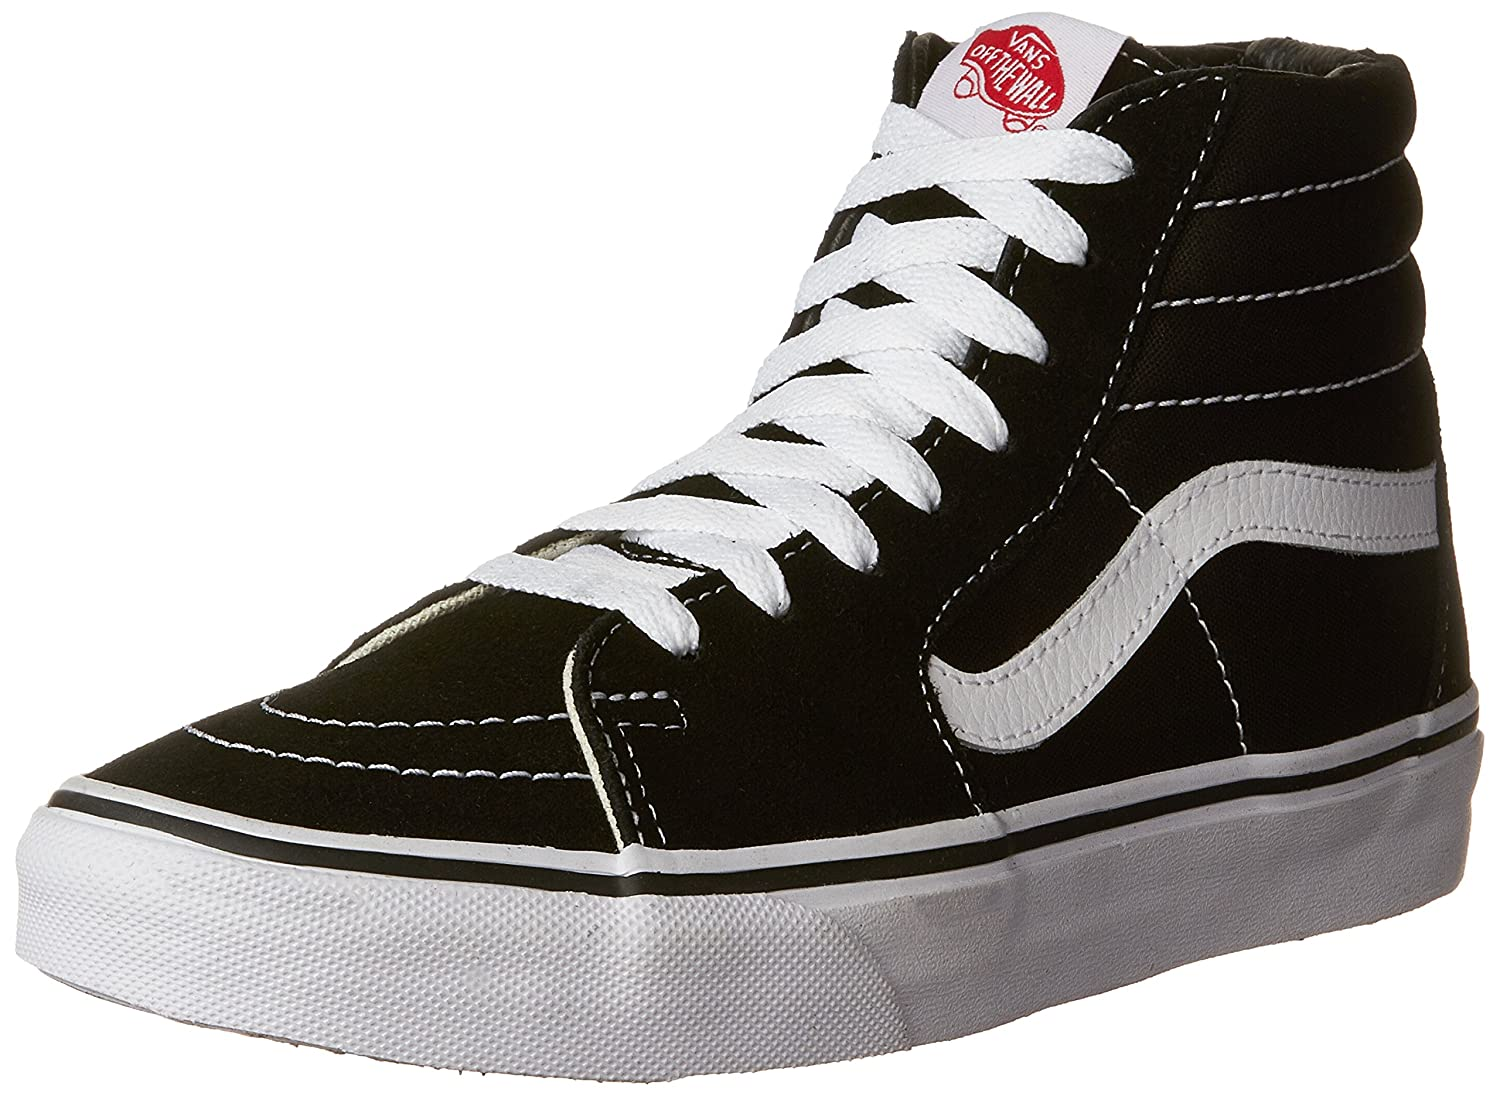 Vans Men's Sk8-Hi(Tm) Core Classics B01LXLL4M1 36-37 M EU / 6.5 B(M) US Women / 5 D(M) US Men|Black/White